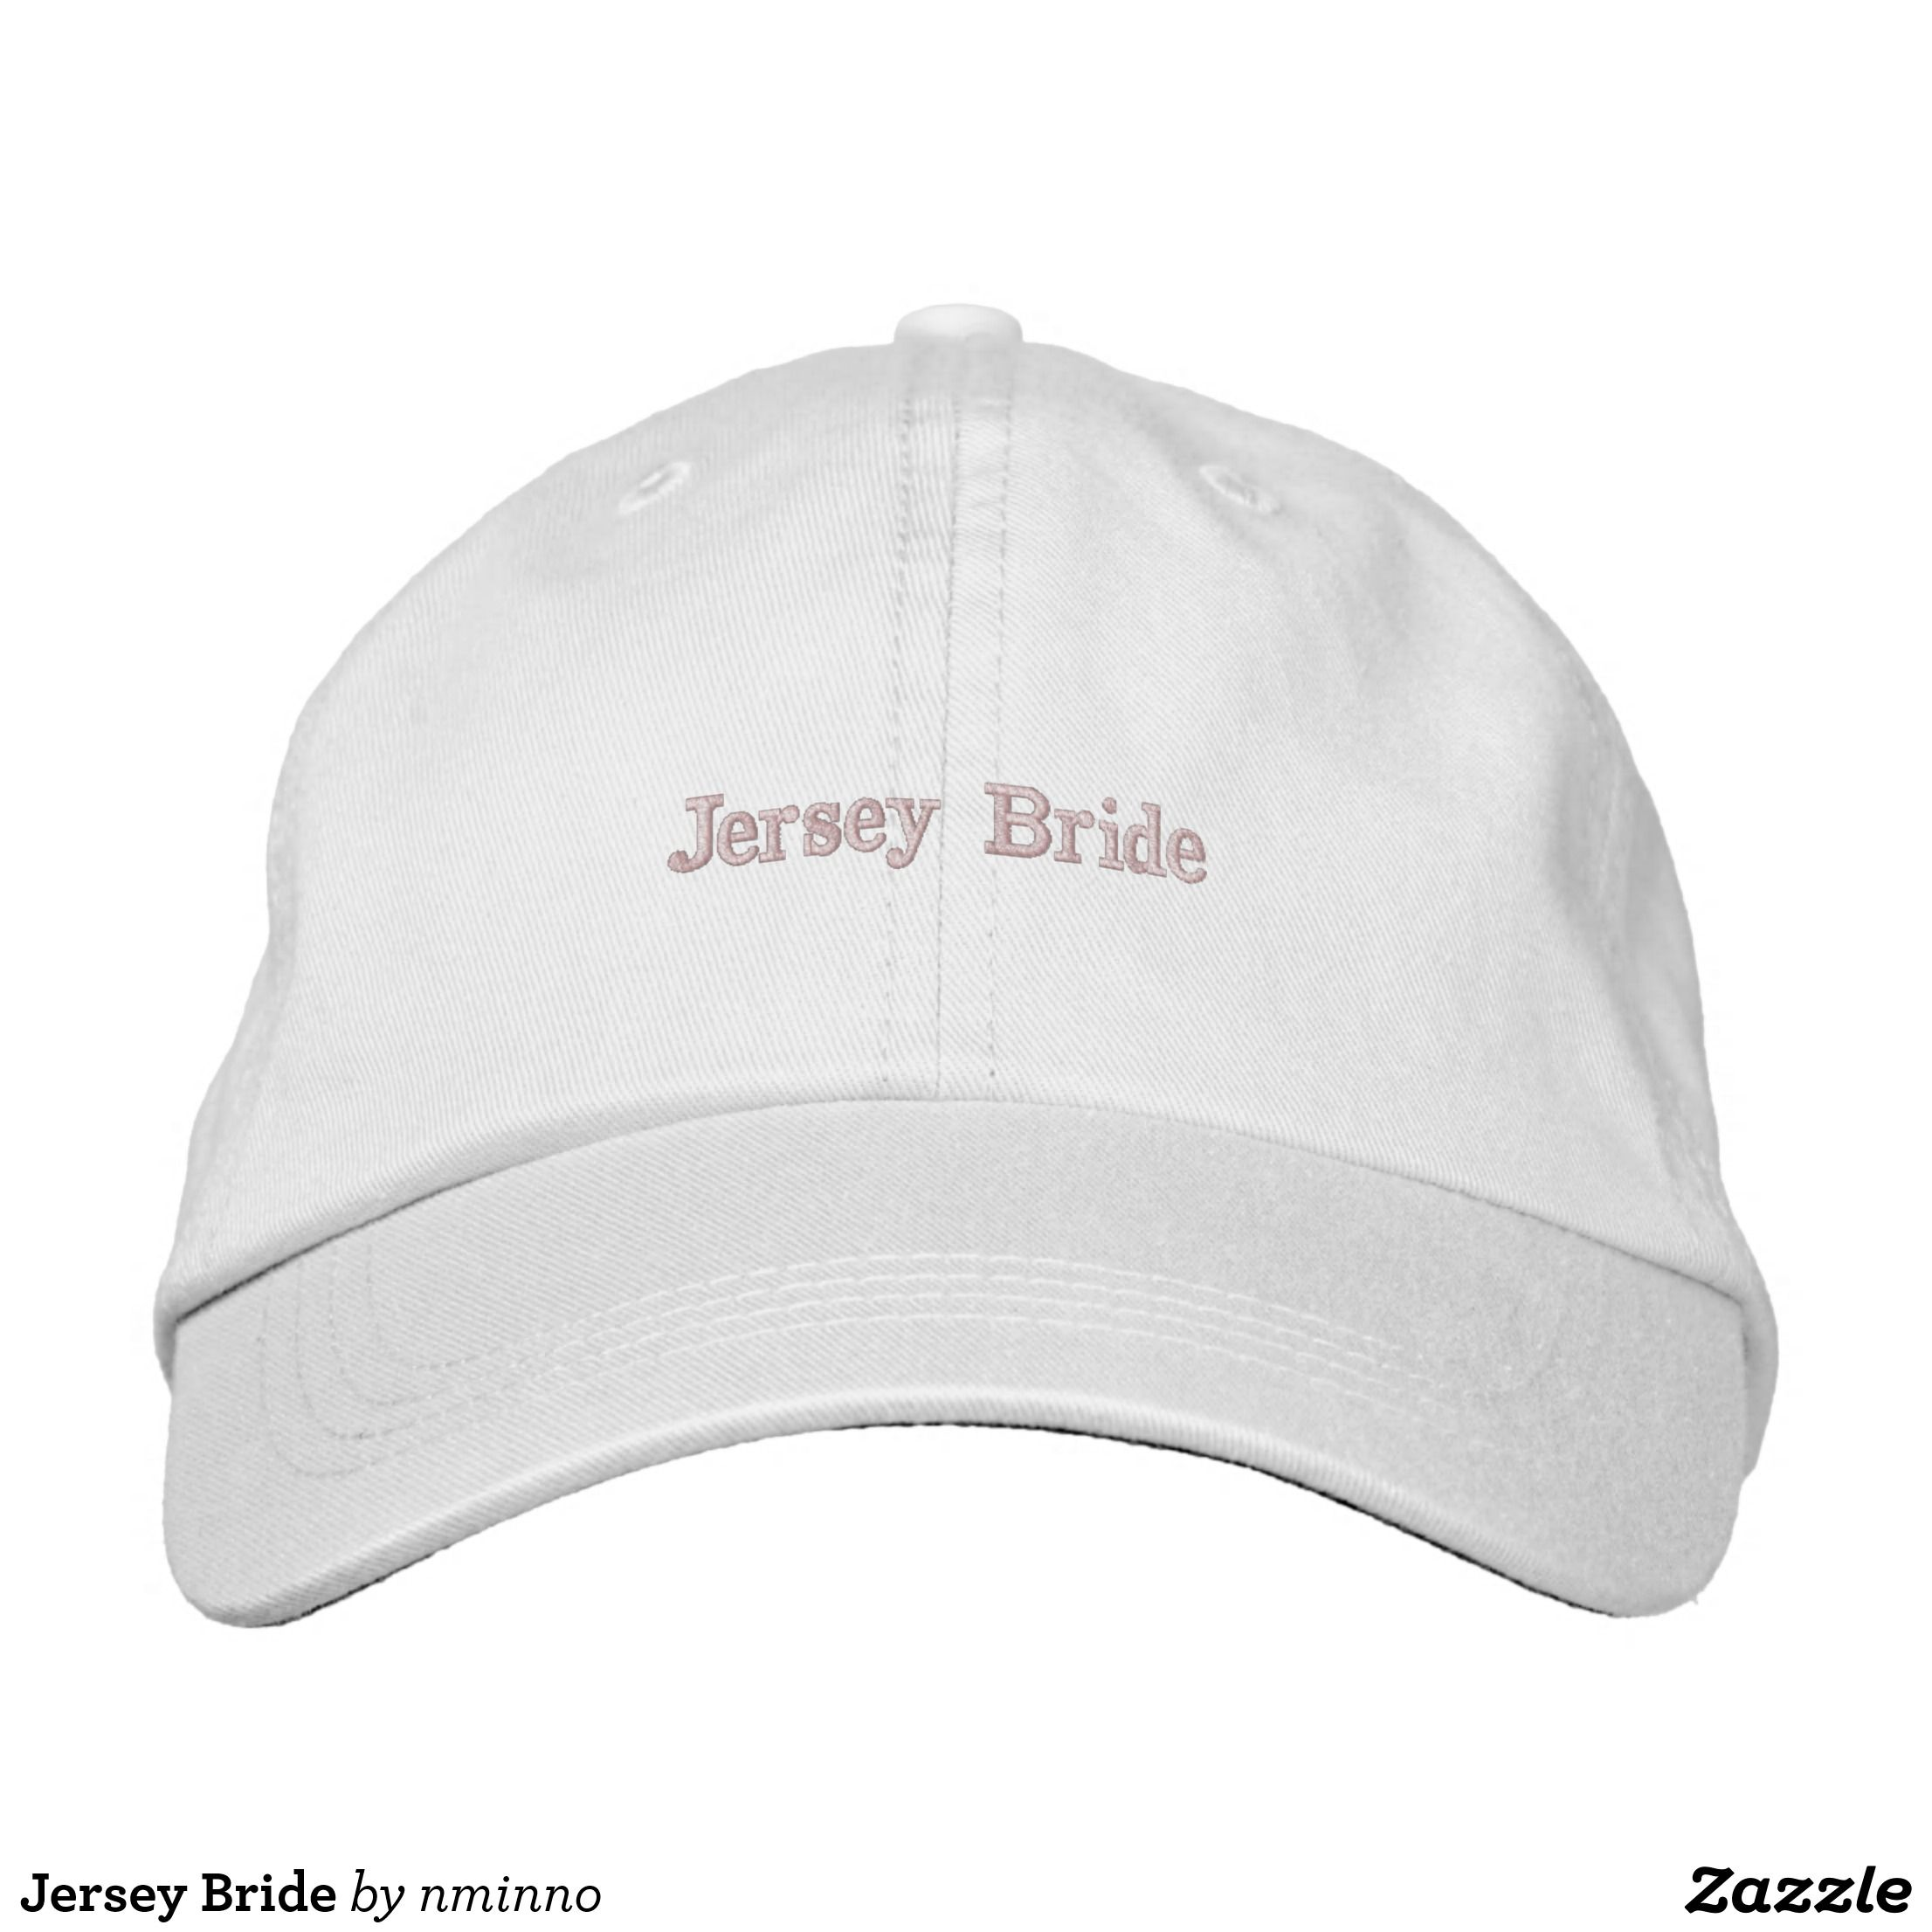 33c40e02 Jersey Bride Embroidered Baseball Cap - Urban Hunter Fisher Farmer Redneck  Hats By Talented Fashion And Graphic Designers - #hats #truckerhat  #mensfashion ...